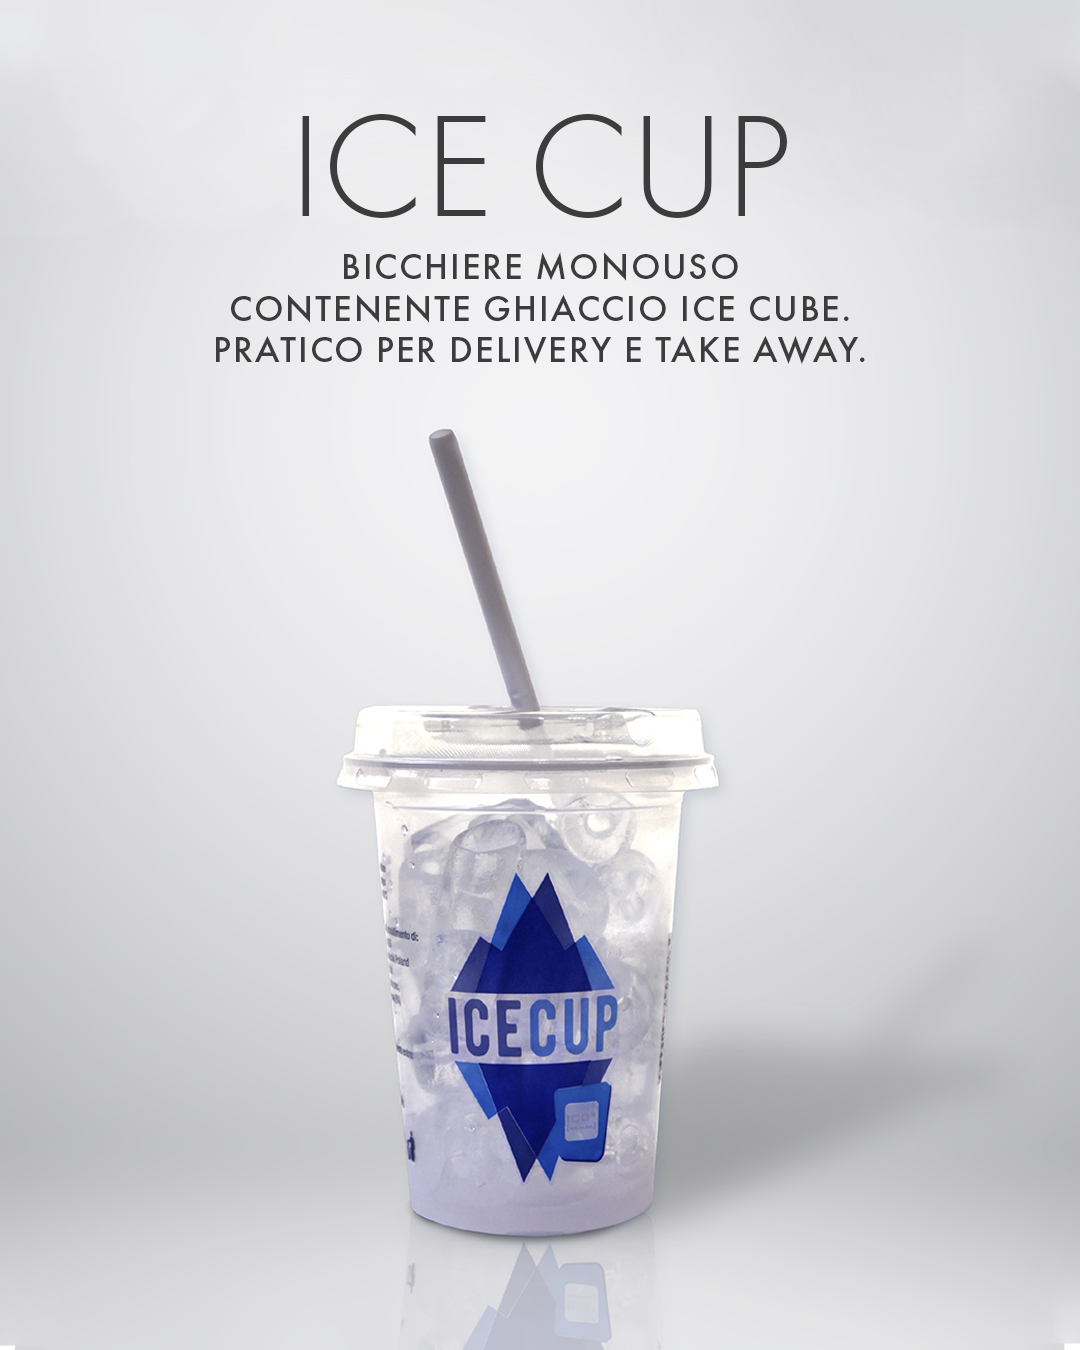 Ice Cup bicchiere ghiaccio